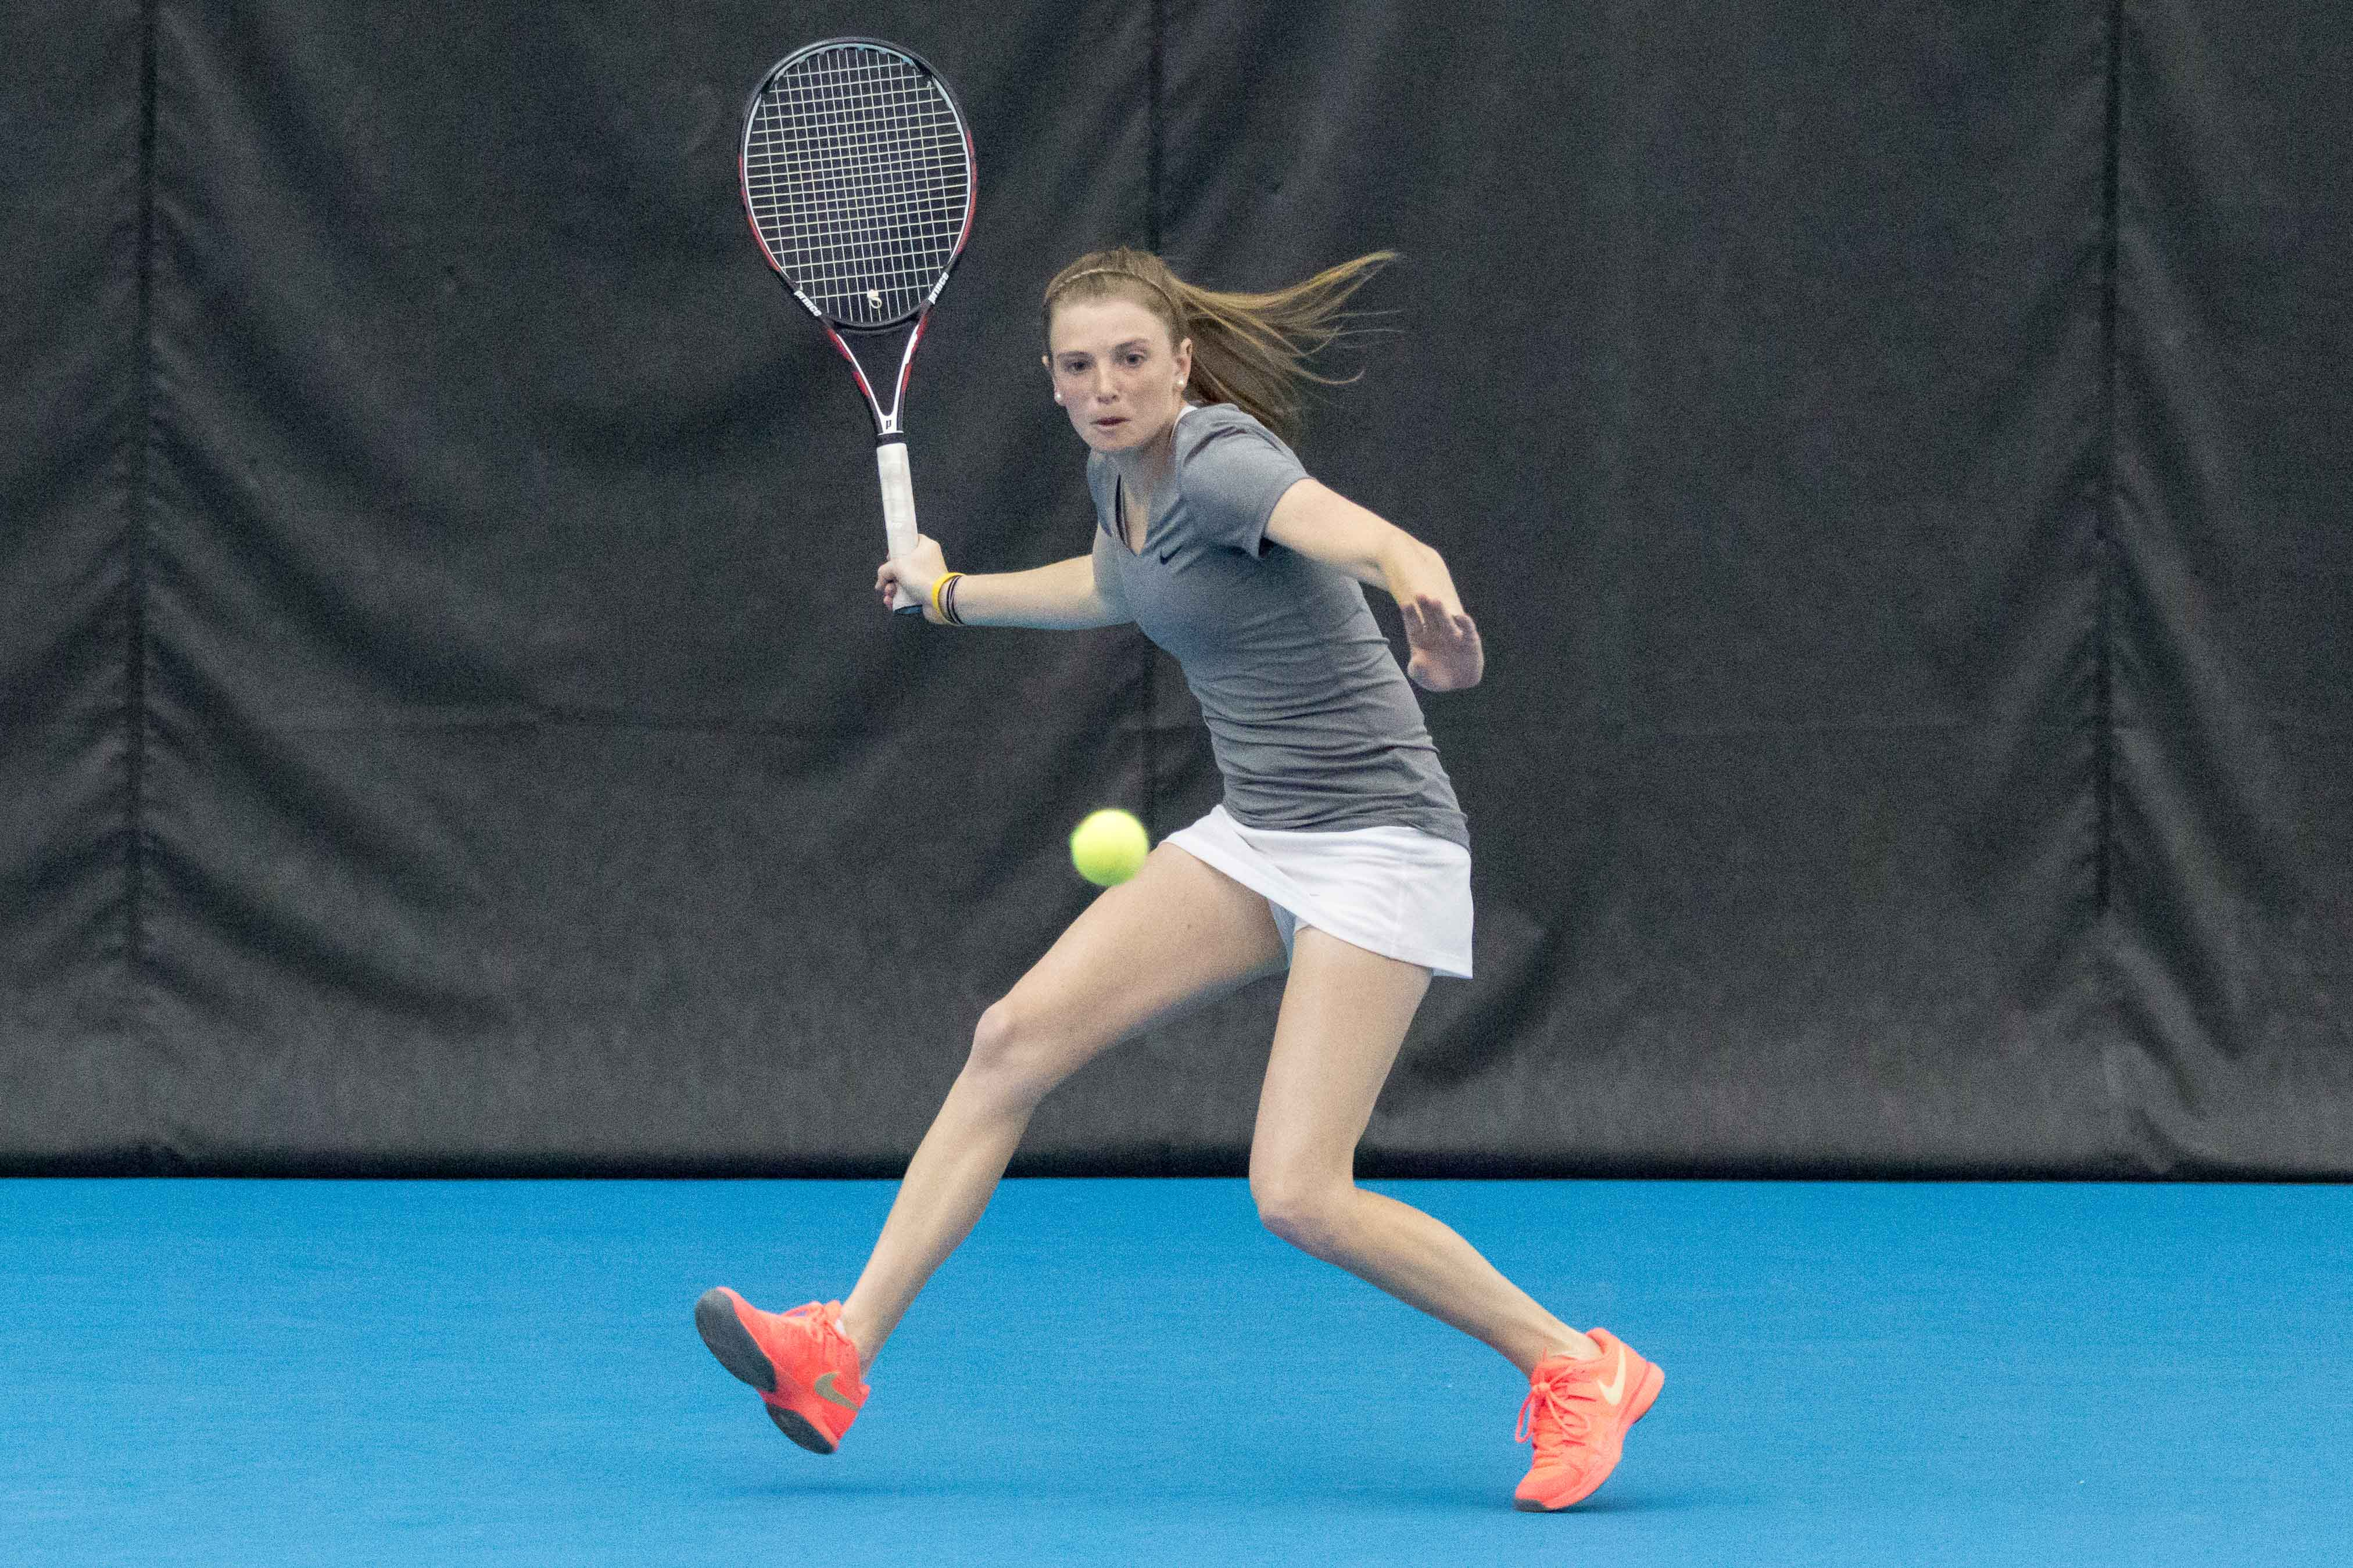 Illinois' Alexis Casati gets ready to return the ball during the match against Nebraska at the Atkin's Tennis Center on Sunday, April 3. The Illini won 4-1.